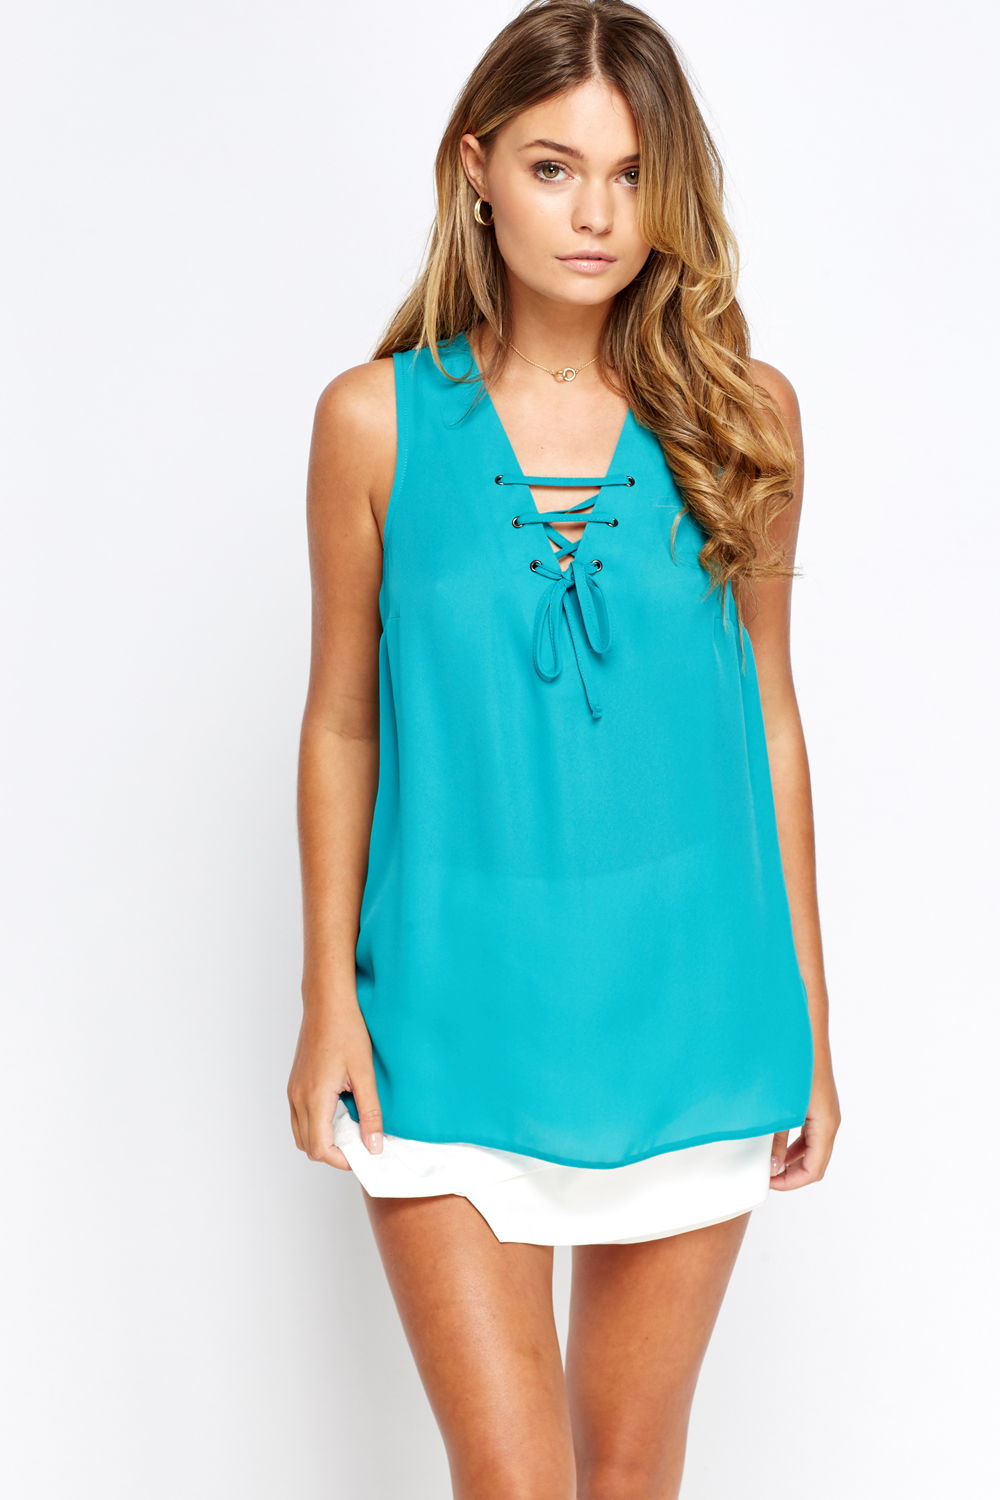 Lace Up Neck Turquoise Top Just 163 5